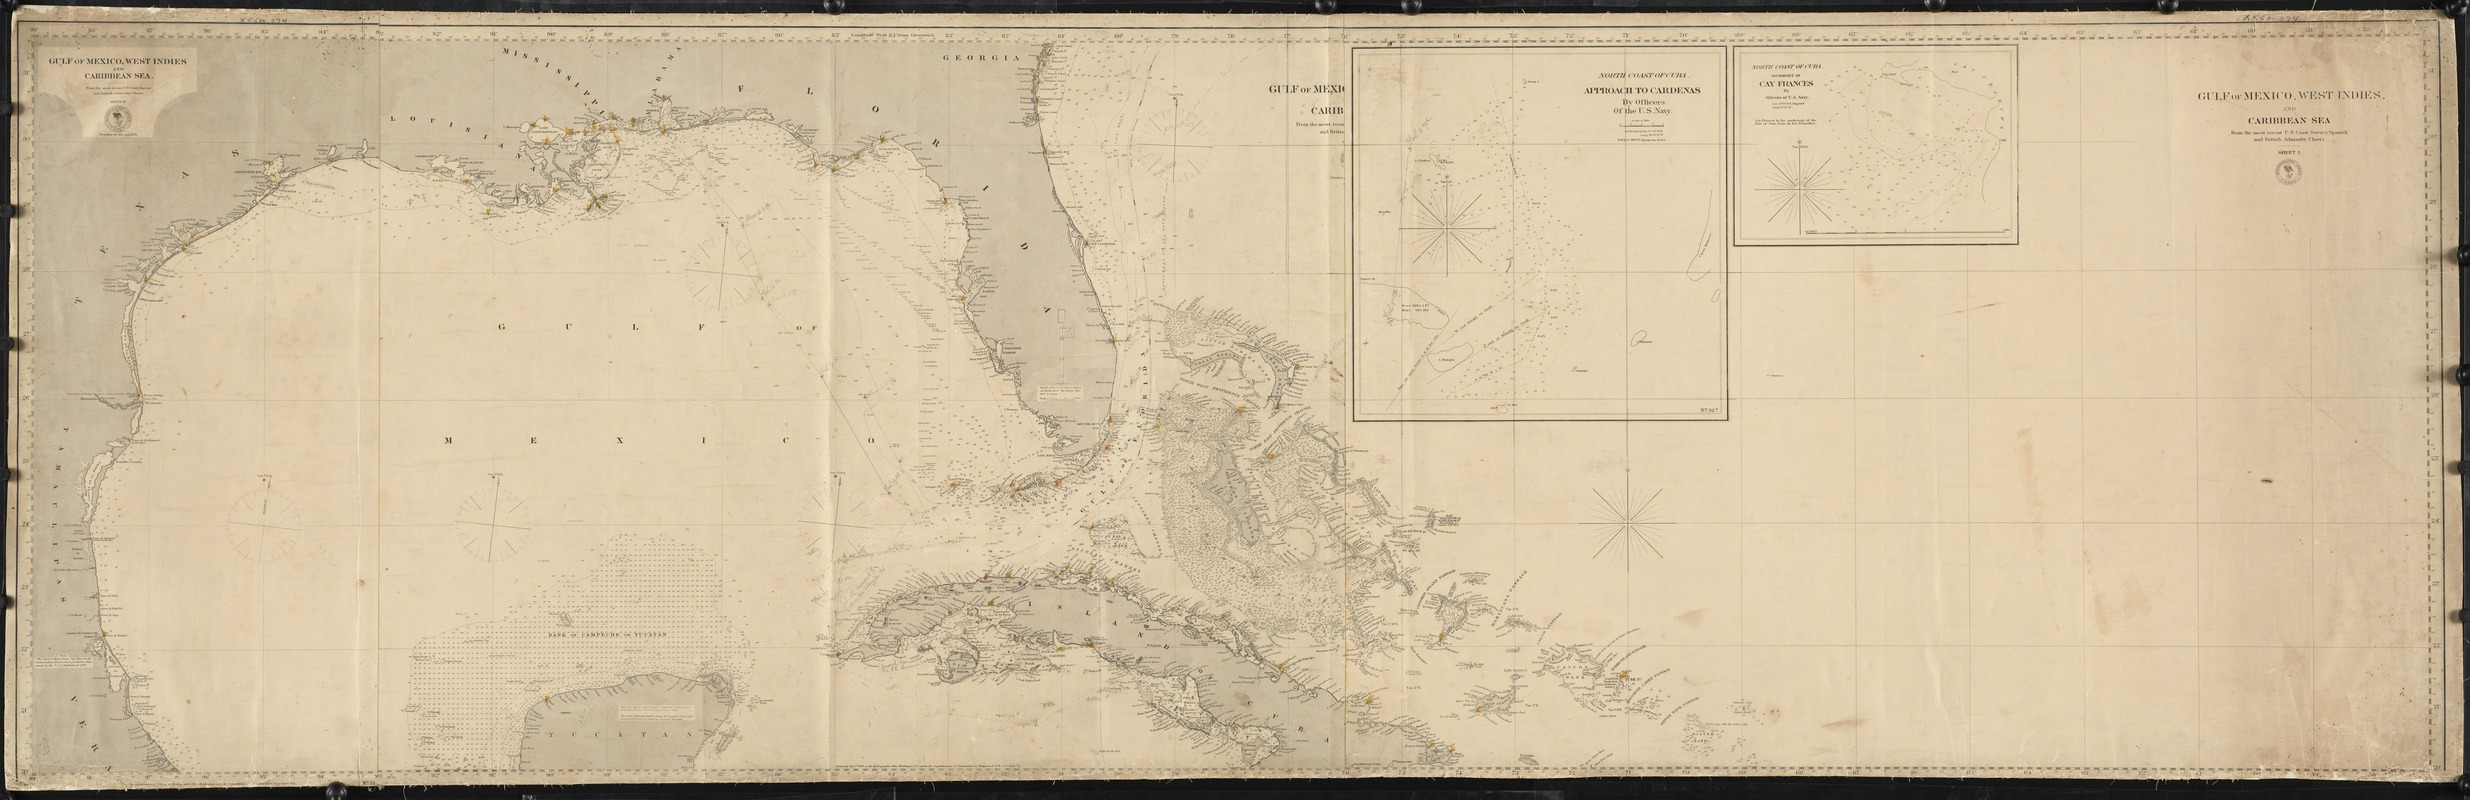 Gulf of Mexico, West Indies, and Caribbean Sea